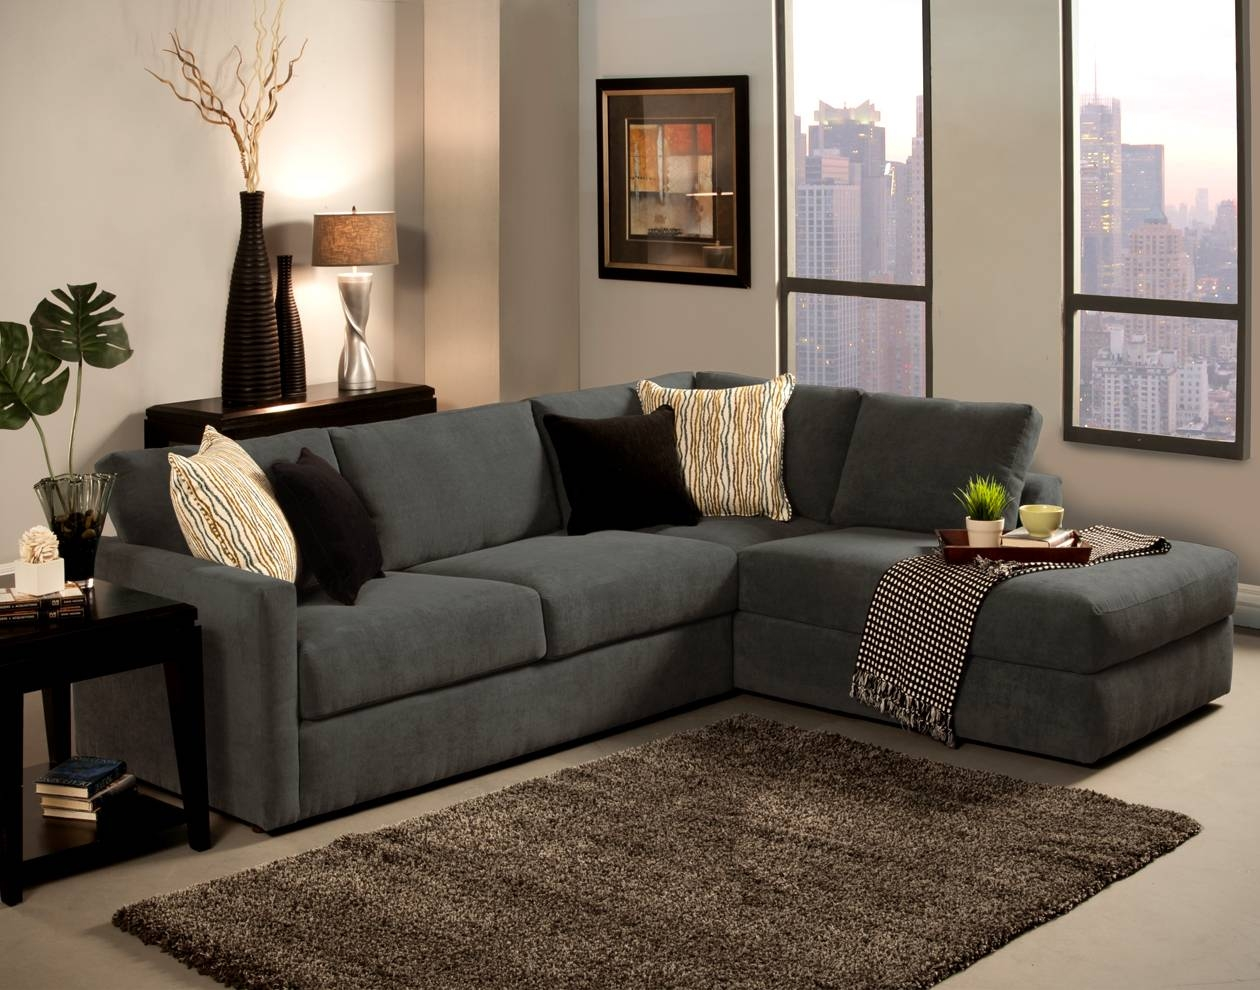 Amazing Small Sectional Sofa With Chaise Lounge 77 With Additional intended for Small Sofas With Chaise Lounge (Image 1 of 15)